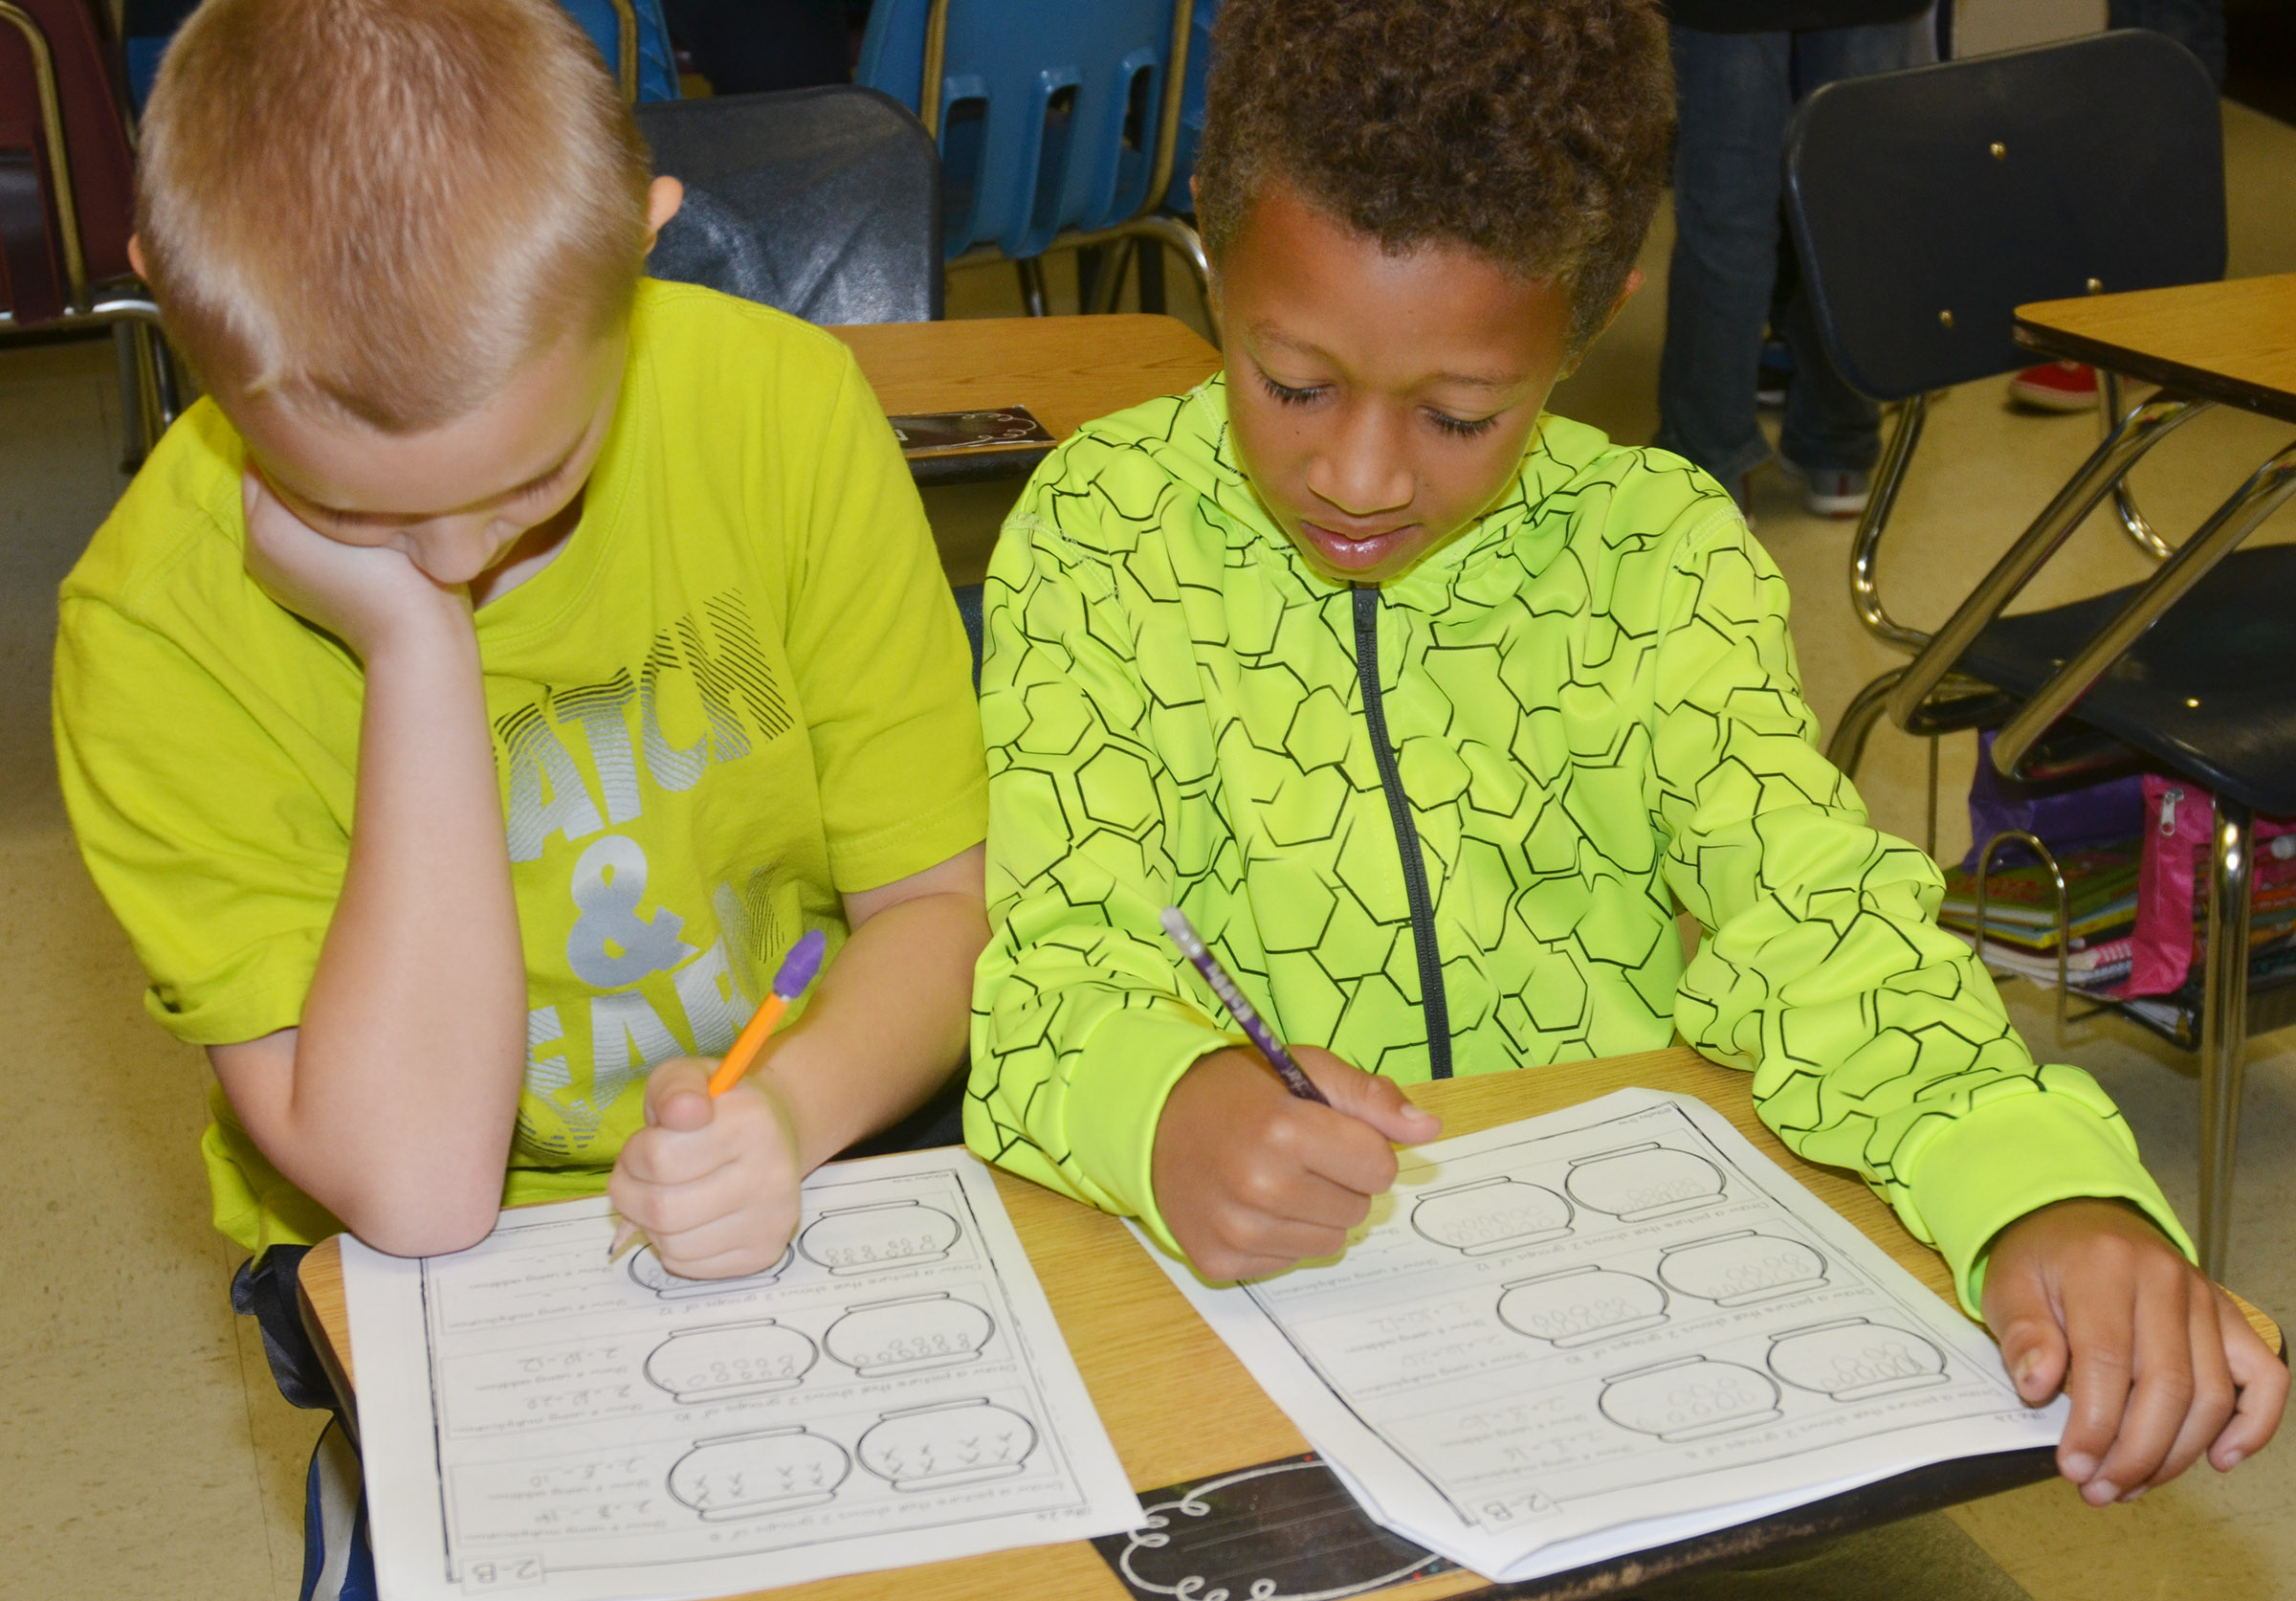 CES third-graders Camren Skaggs, at left, and Rajon Taylor sit together as they work on their multiplication math worksheets.